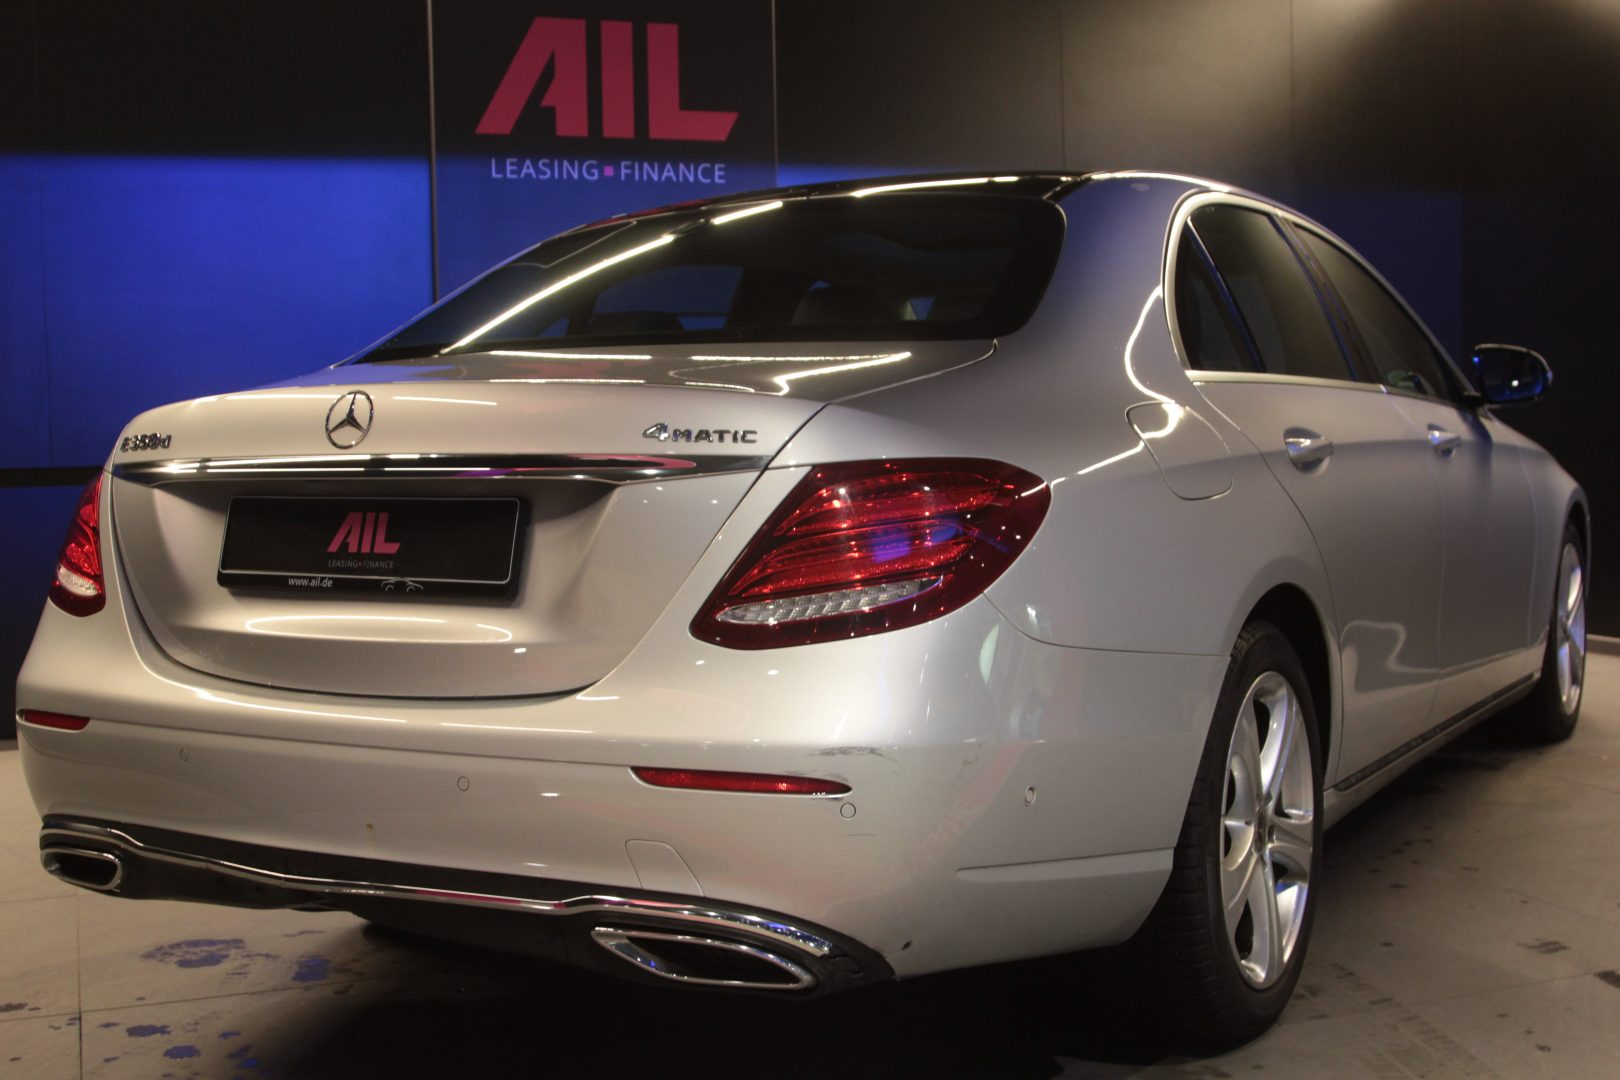 AIL Mercedes-Benz E 350 d 4Matic 7